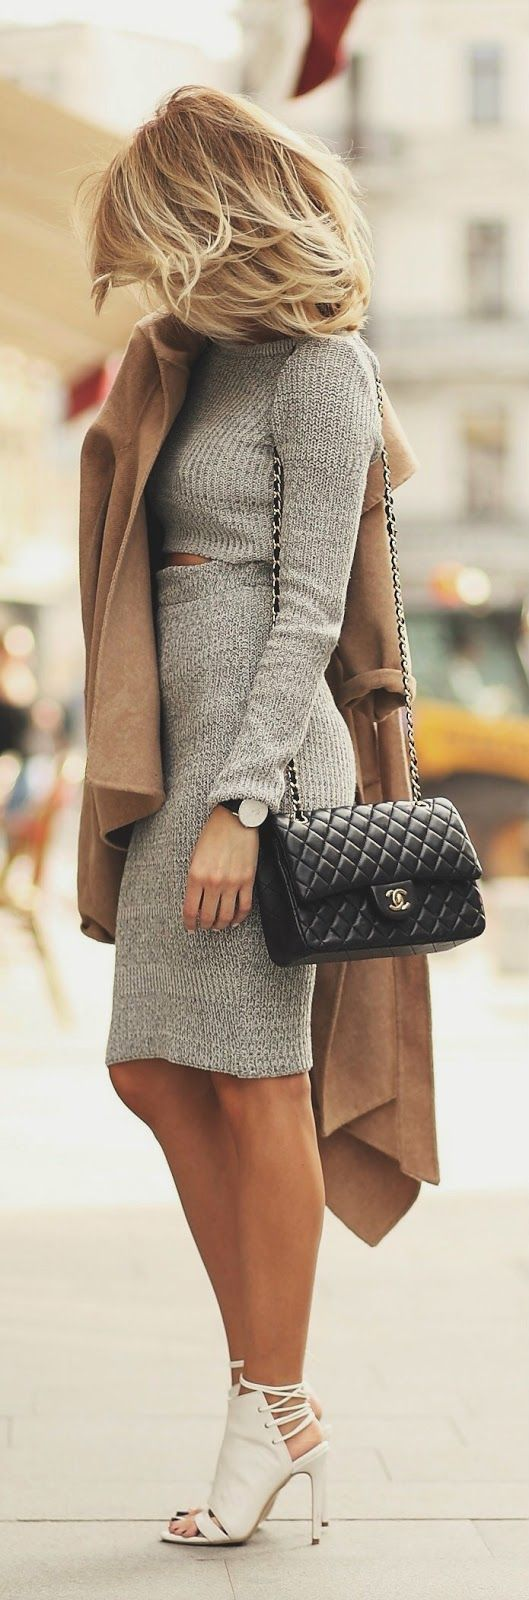 camel coat, grey knit dress, Chanel bag & white bootie heels #style #fashion: